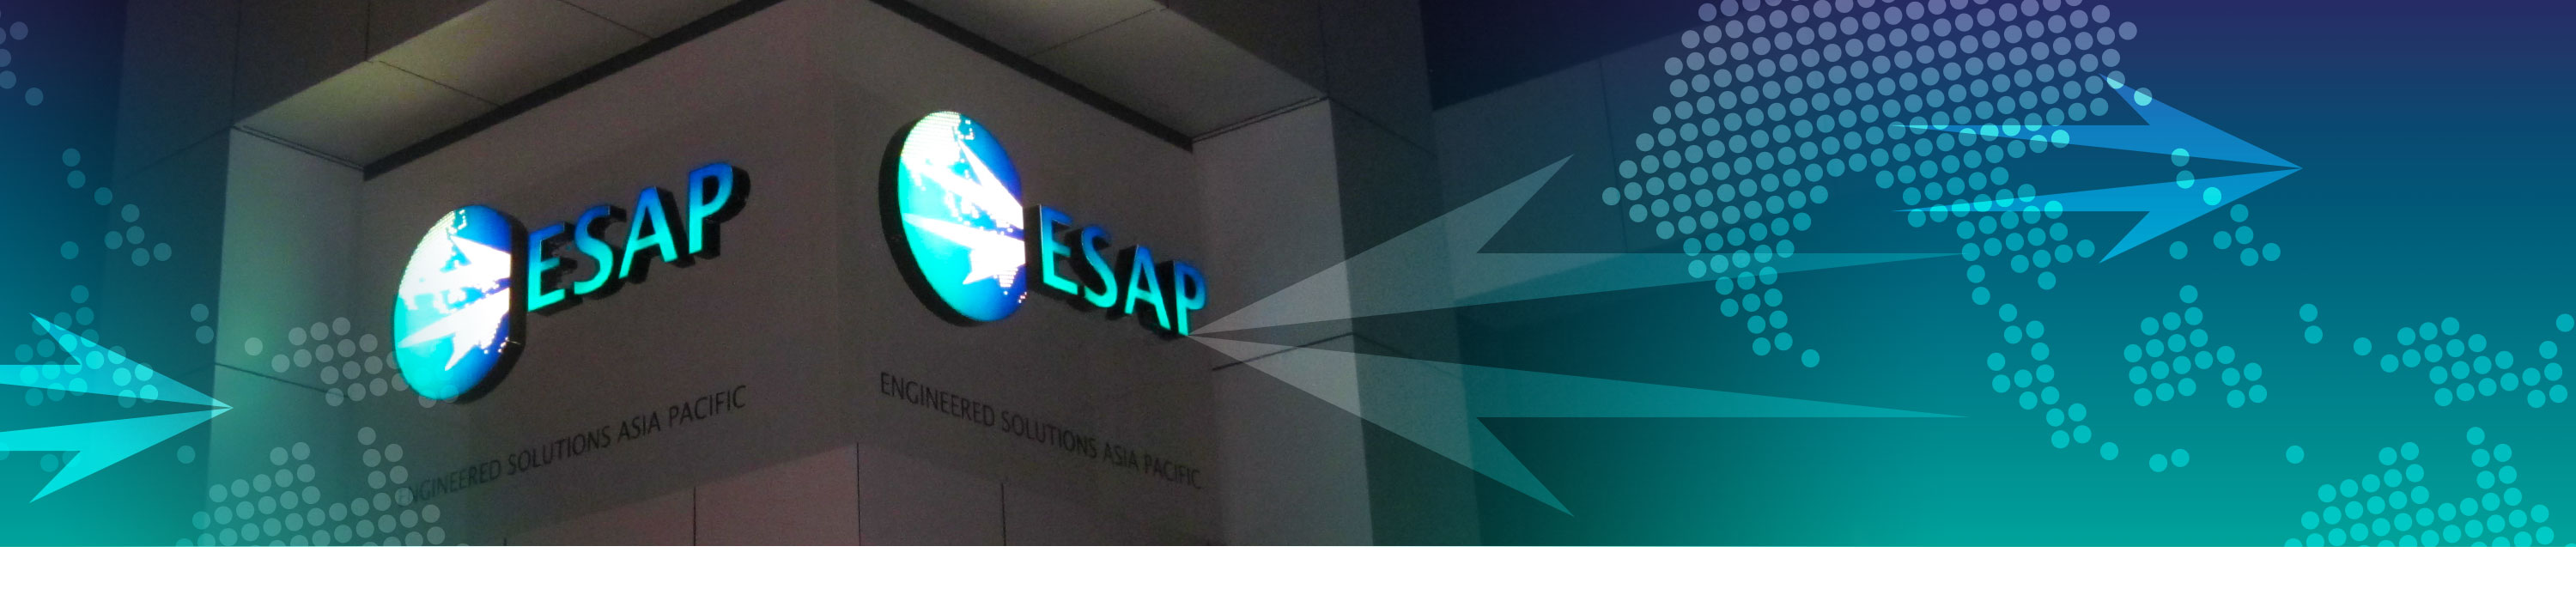 esap-new-factory-slide